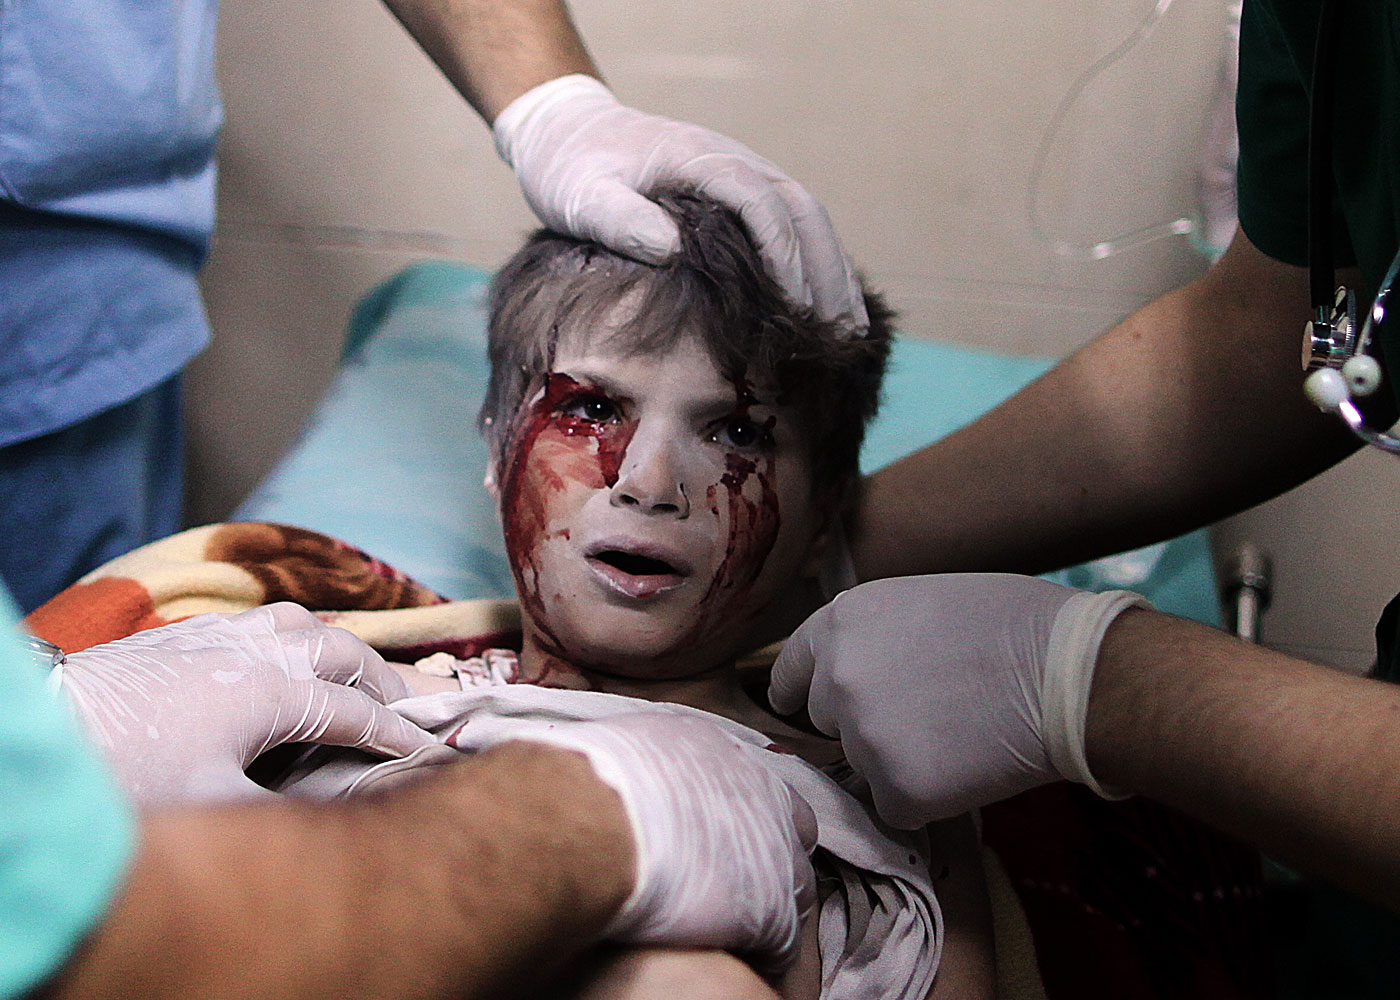 A Palestinian boy, who medics said was wounded by Israeli shelling, receives treatment at al-Shifa hospital in Gaza City July 20, 2014.